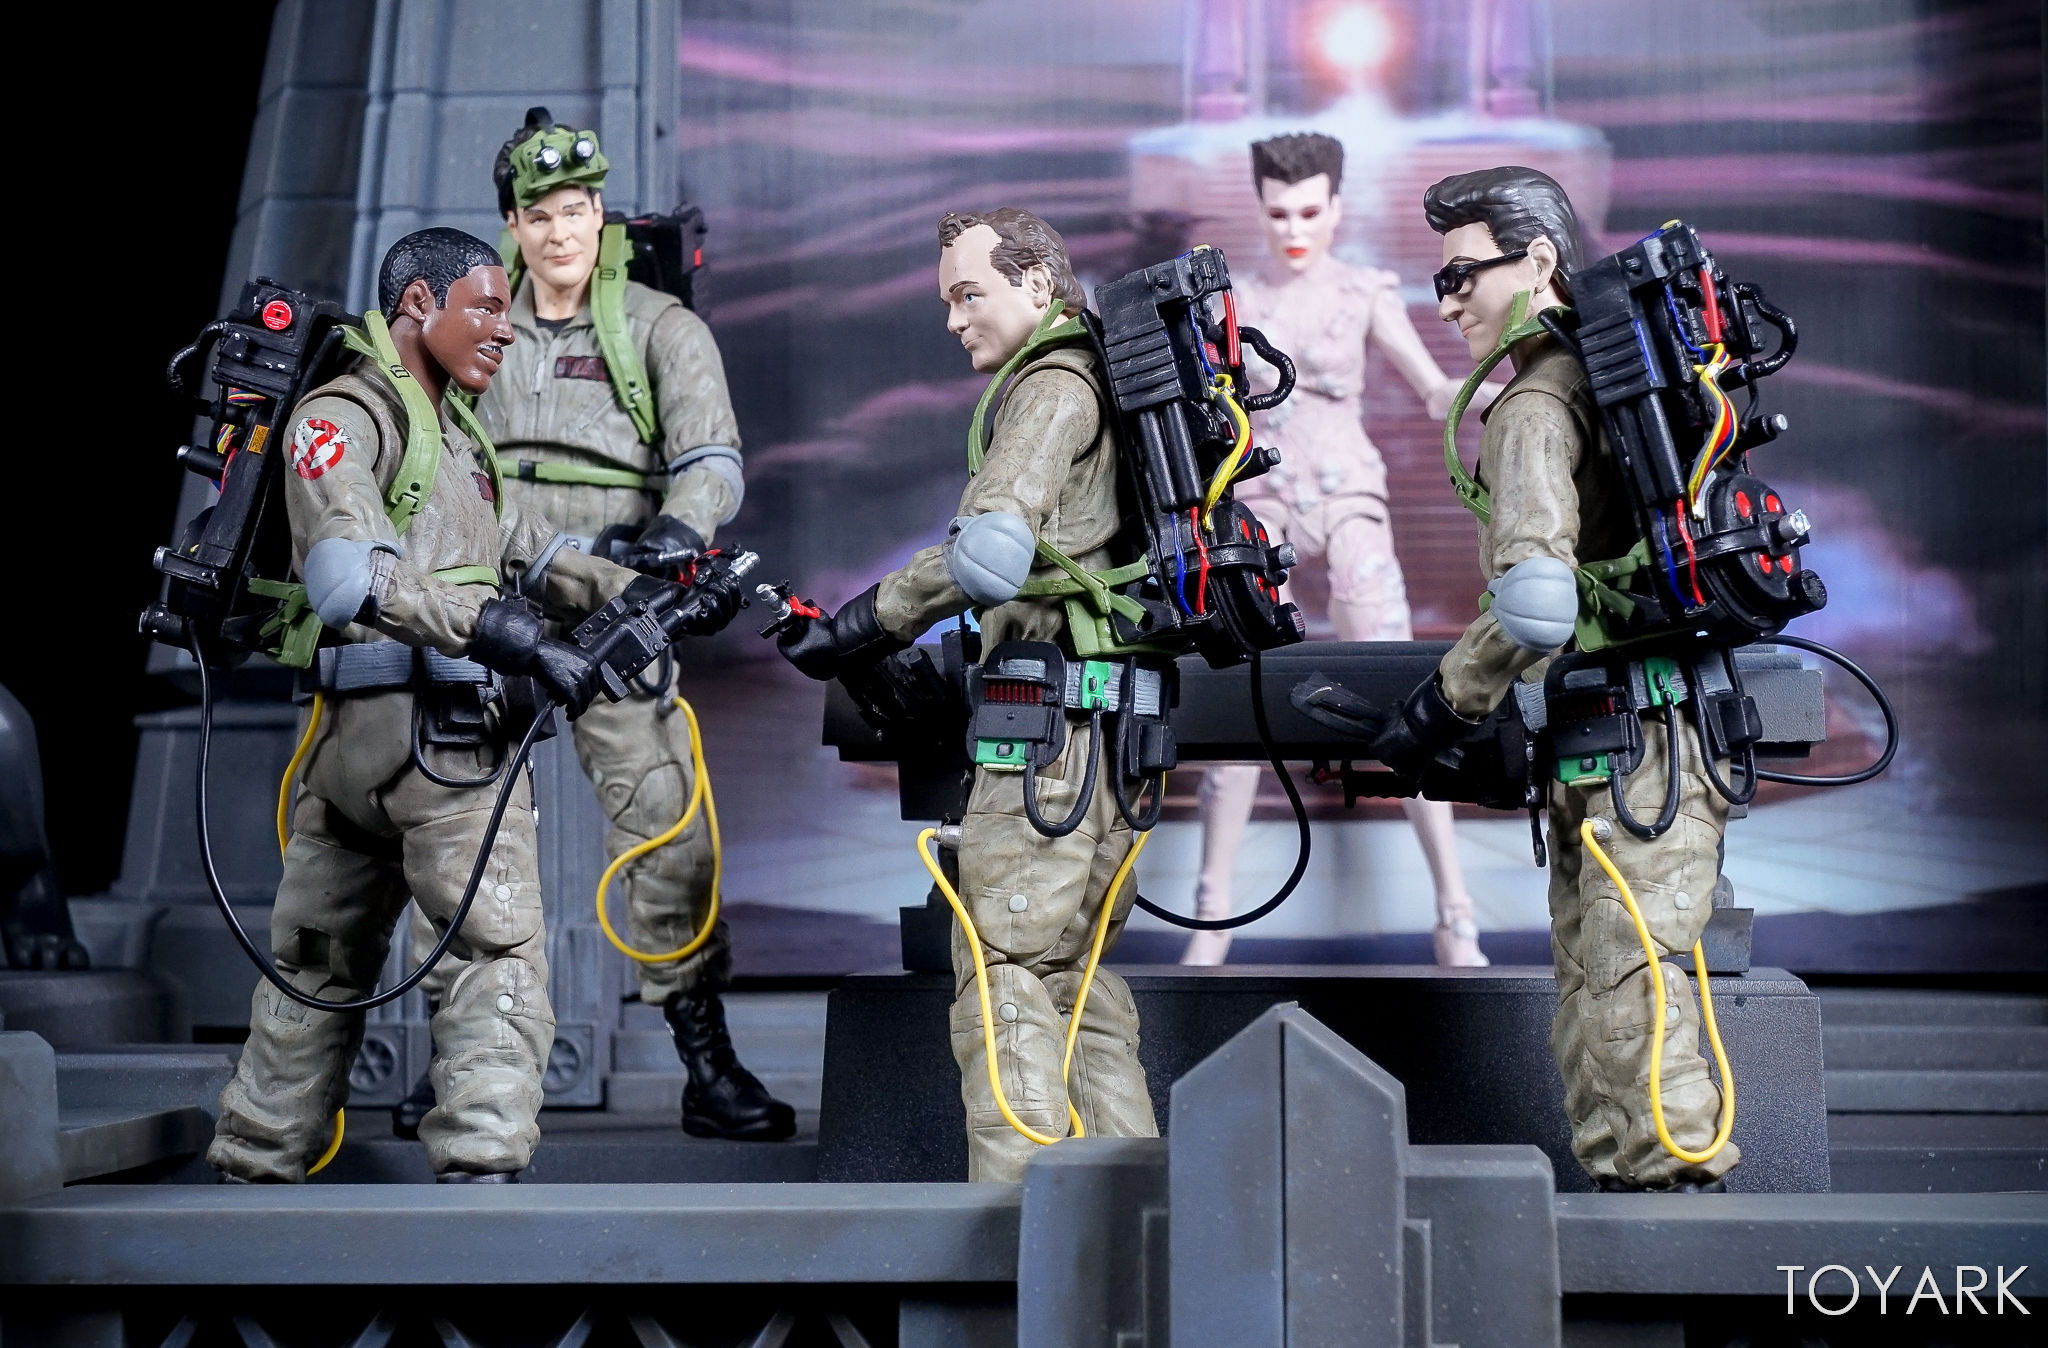 http://news.toyark.com/wp-content/uploads/sites/4/2017/06/Ghostbusters-Select-Series-5-DST-061.jpg